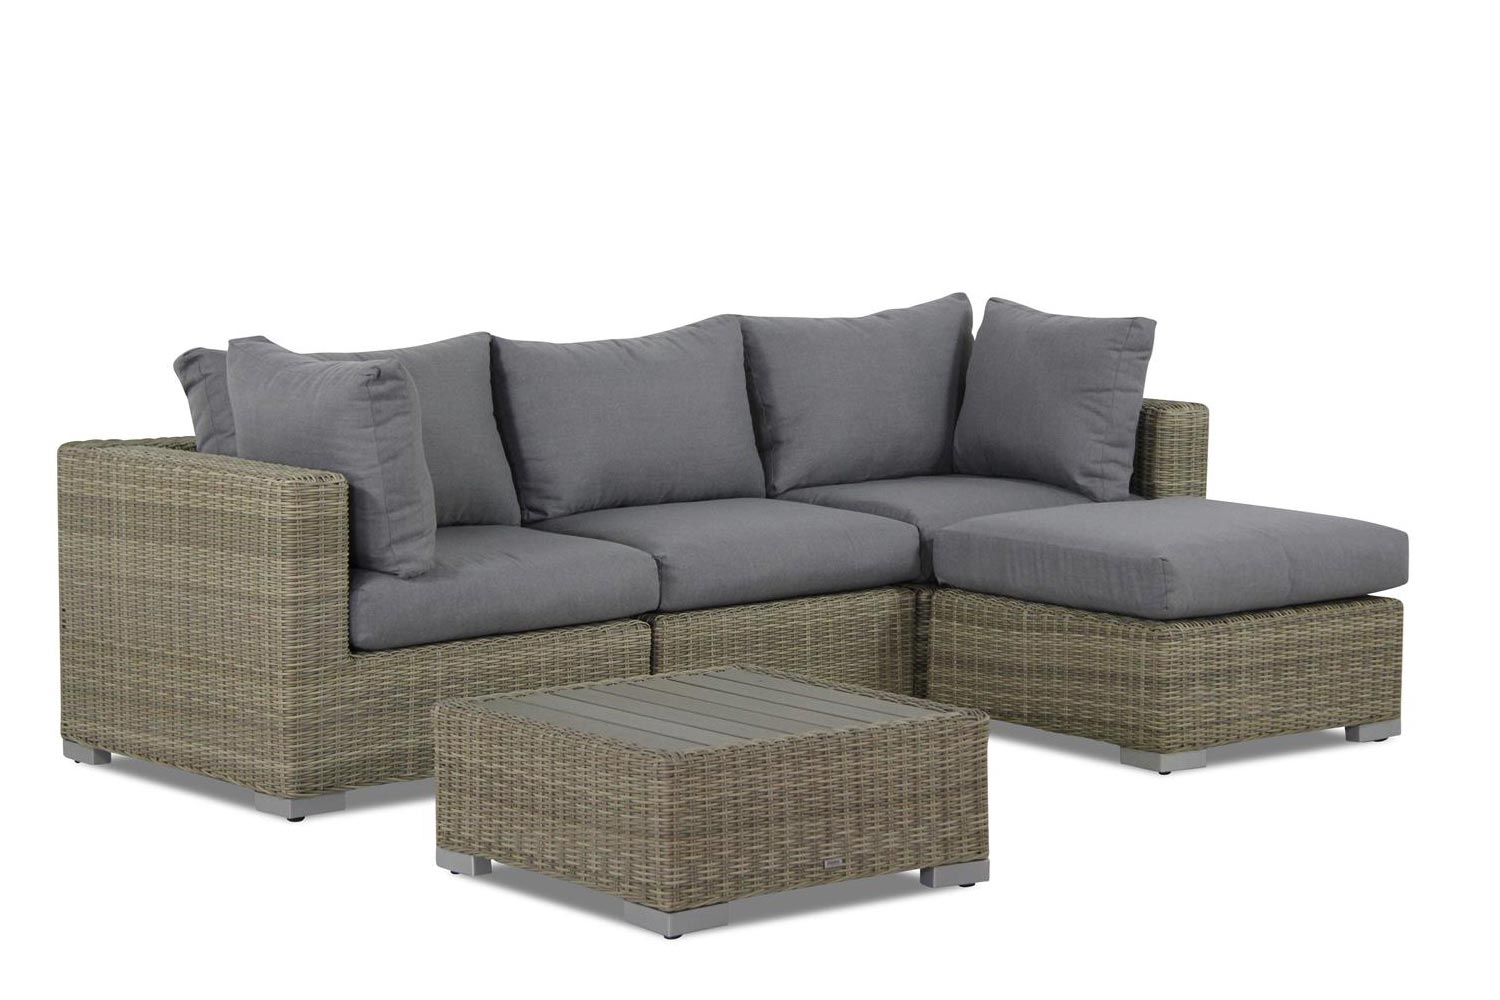 Garden Collections Toronto chaise longue loungeset 5 delig